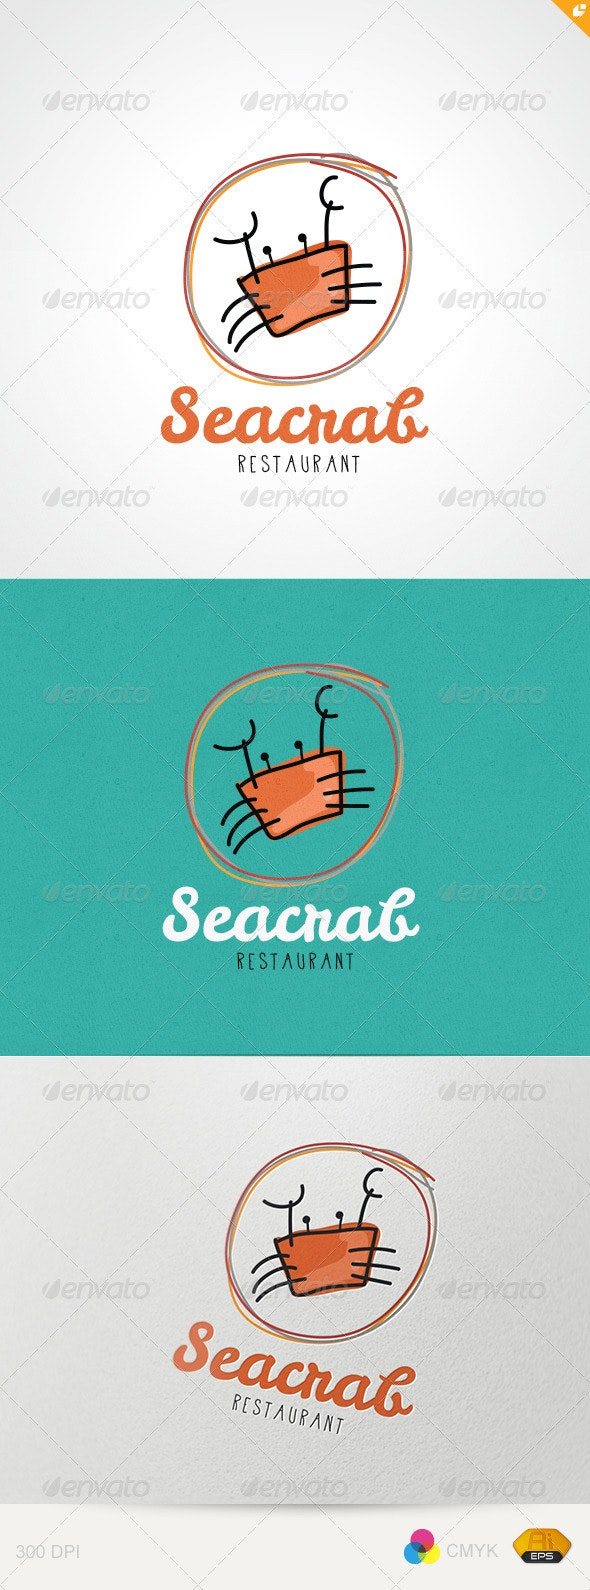 Sea Crab Restaurant - Restaurant Logo Templates